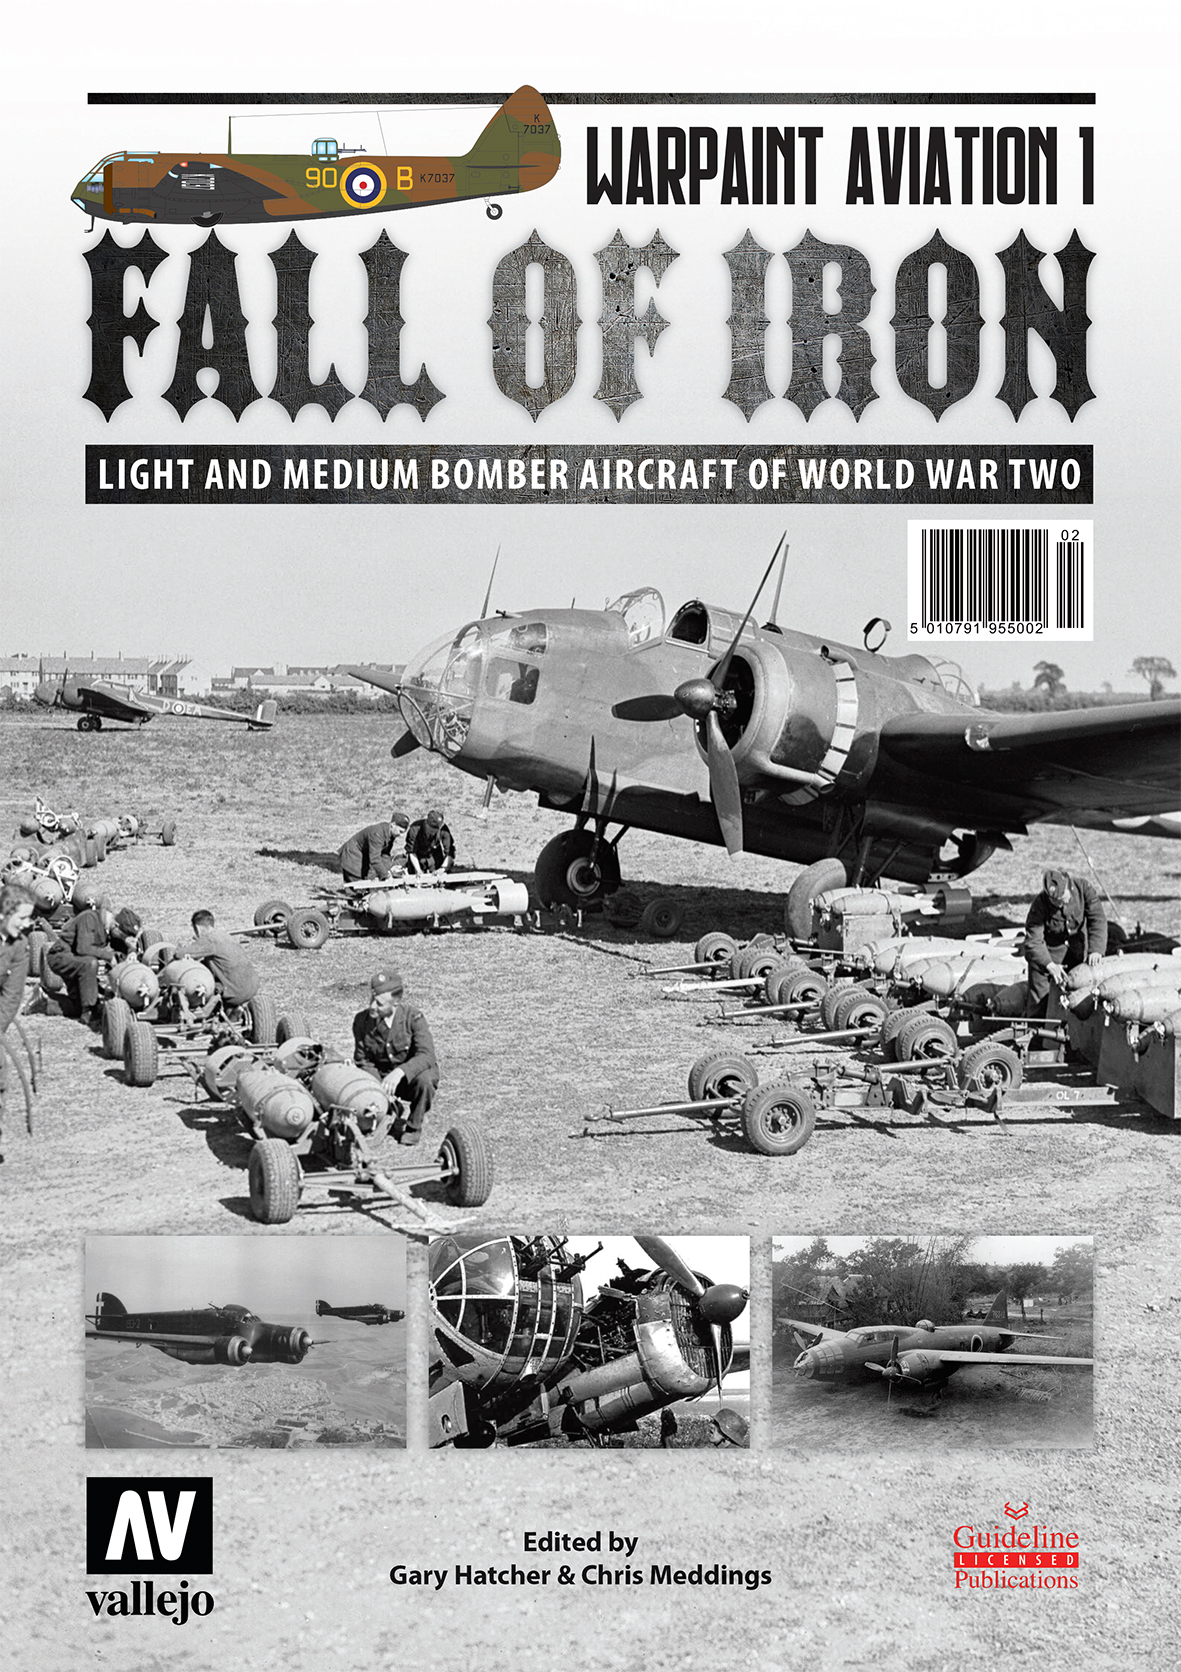 Guideline Publications Fall of Iron Light and Medium bomber aircraft of World War 2